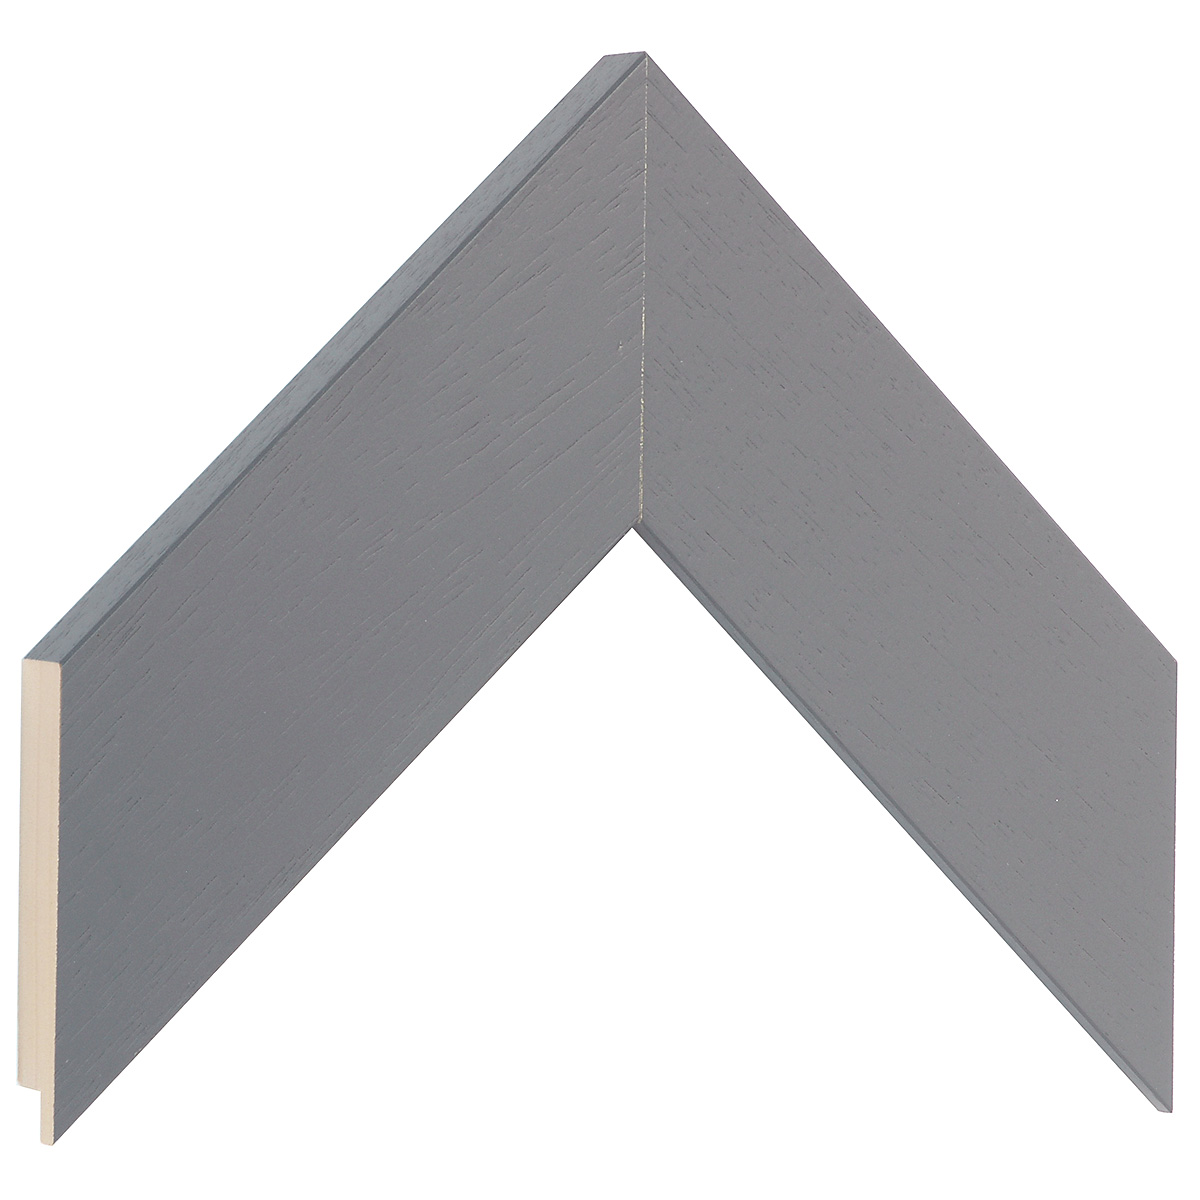 Moulding ayous - Width 58mm Height 20 - Iron Grey